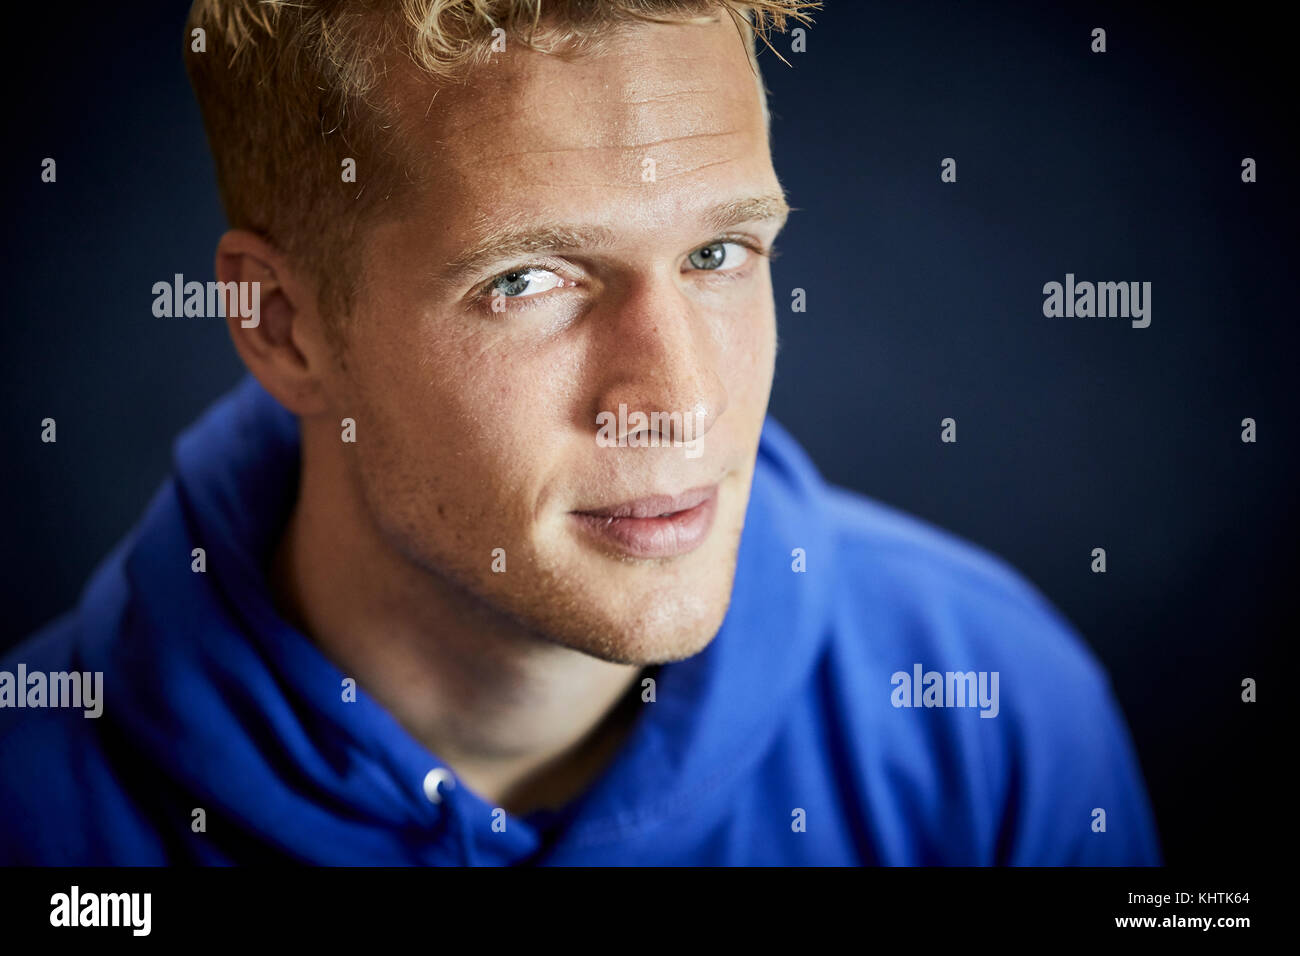 Portrait image of Jonas Lössl, a Danish Professional football player who plays as a goalkeeper for Premier - Stock Image